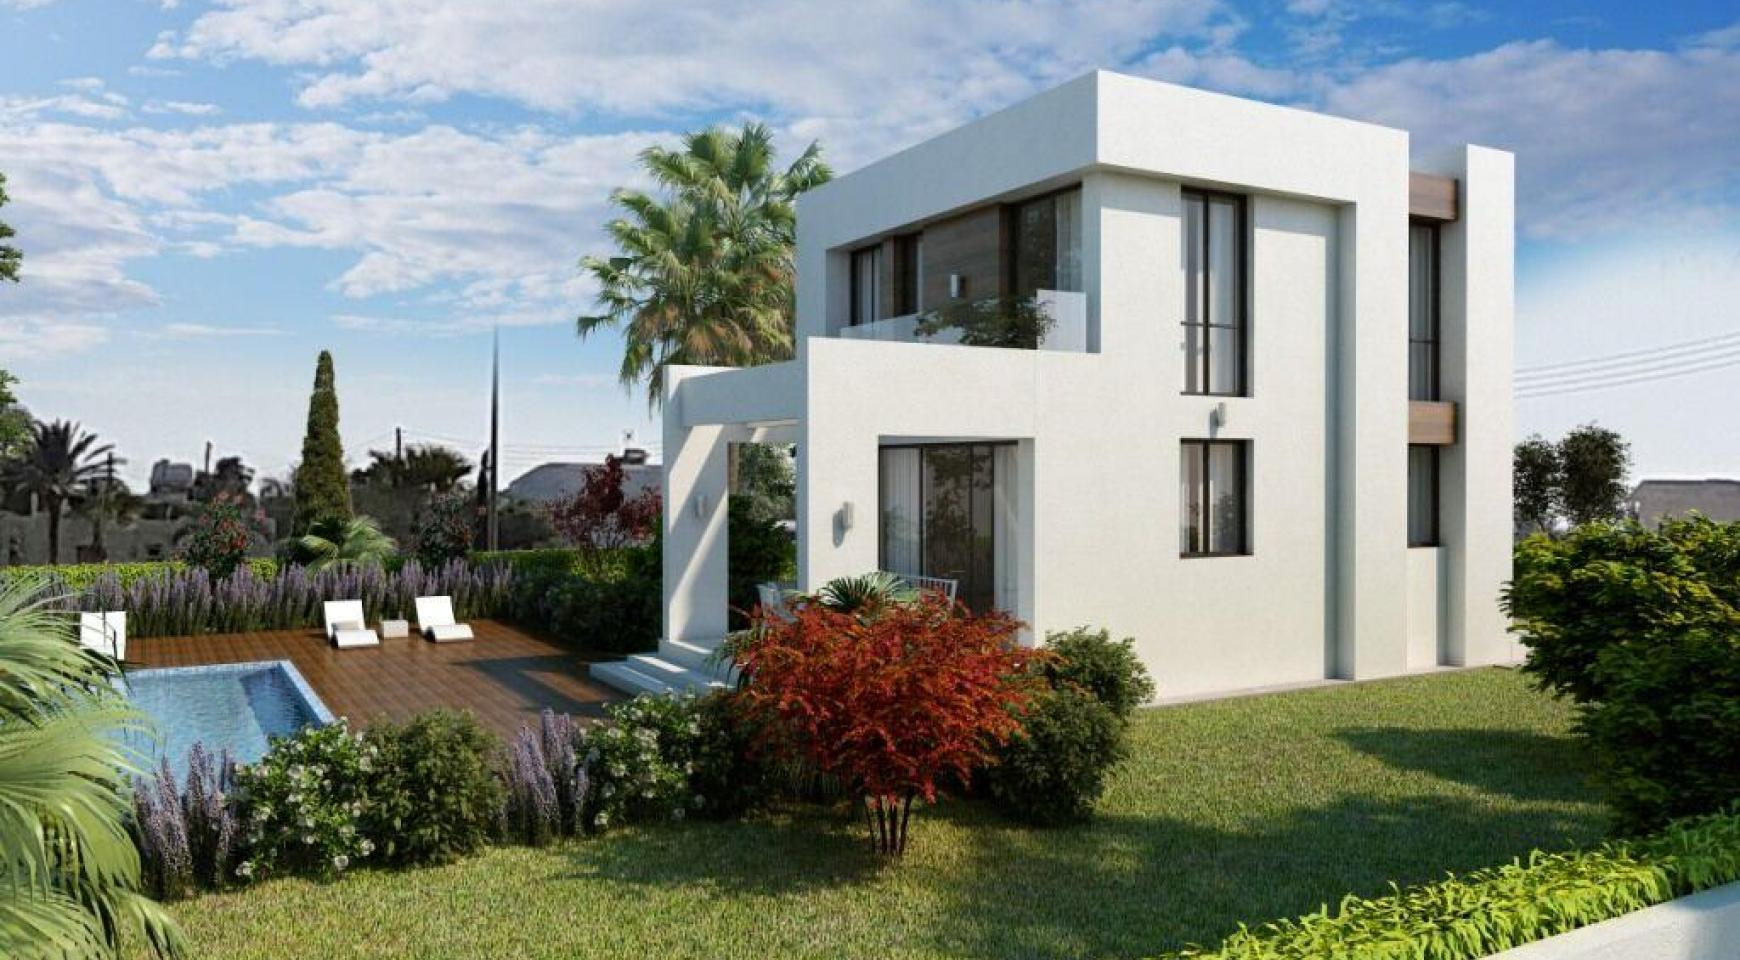 Modern 3 Bedroom Villa in a Complex near the Beach - 3